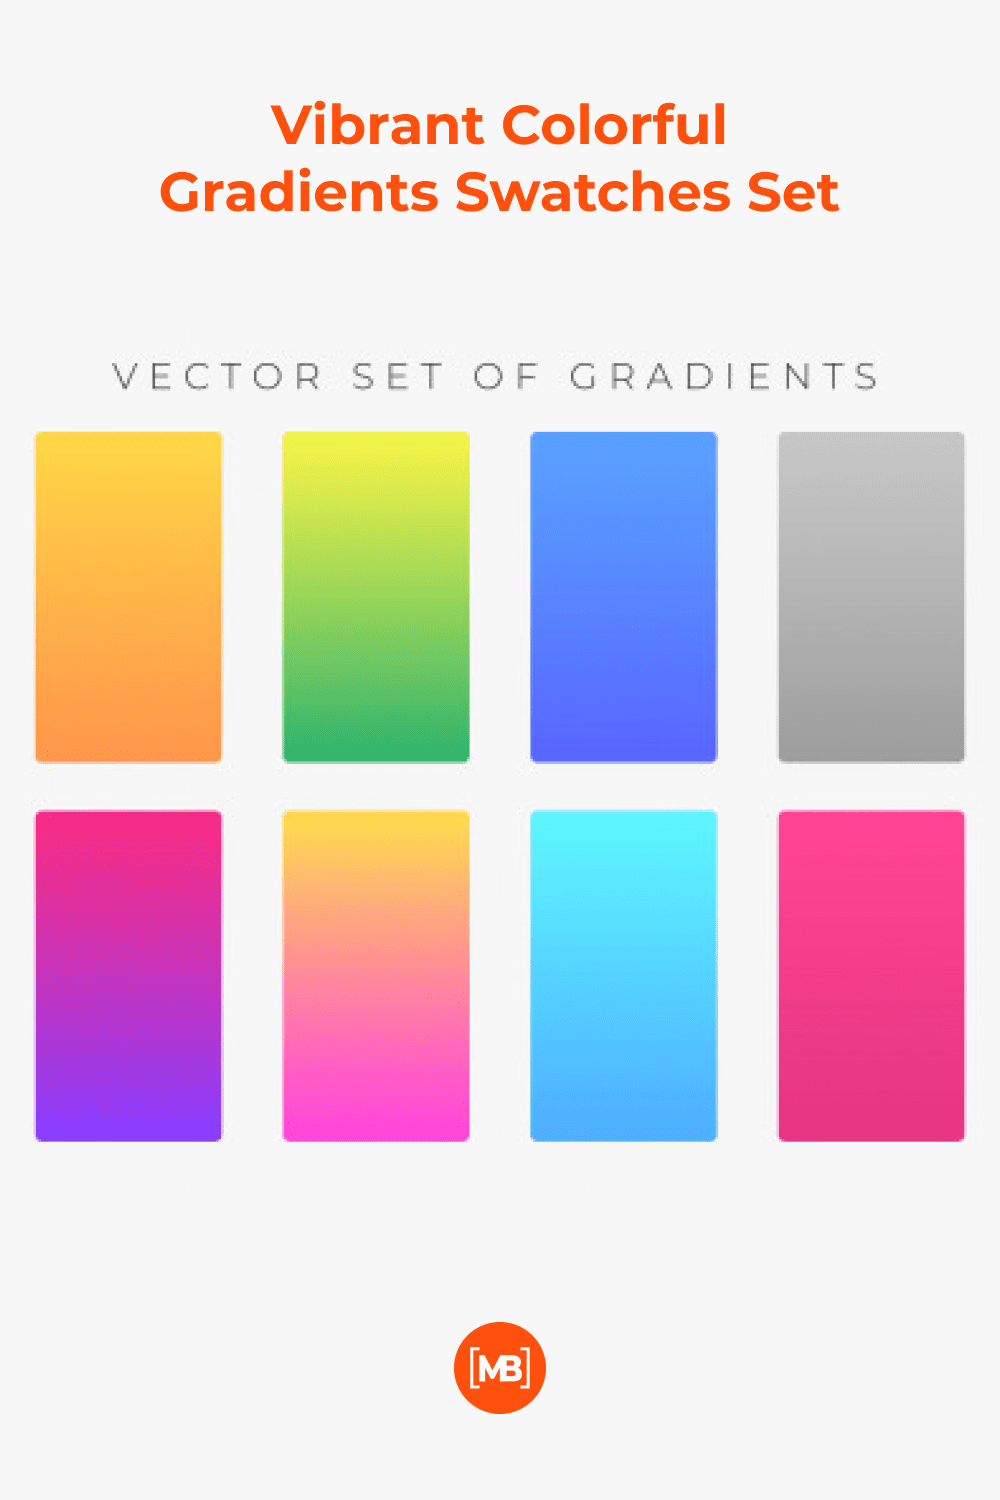 Gradient of different colors.